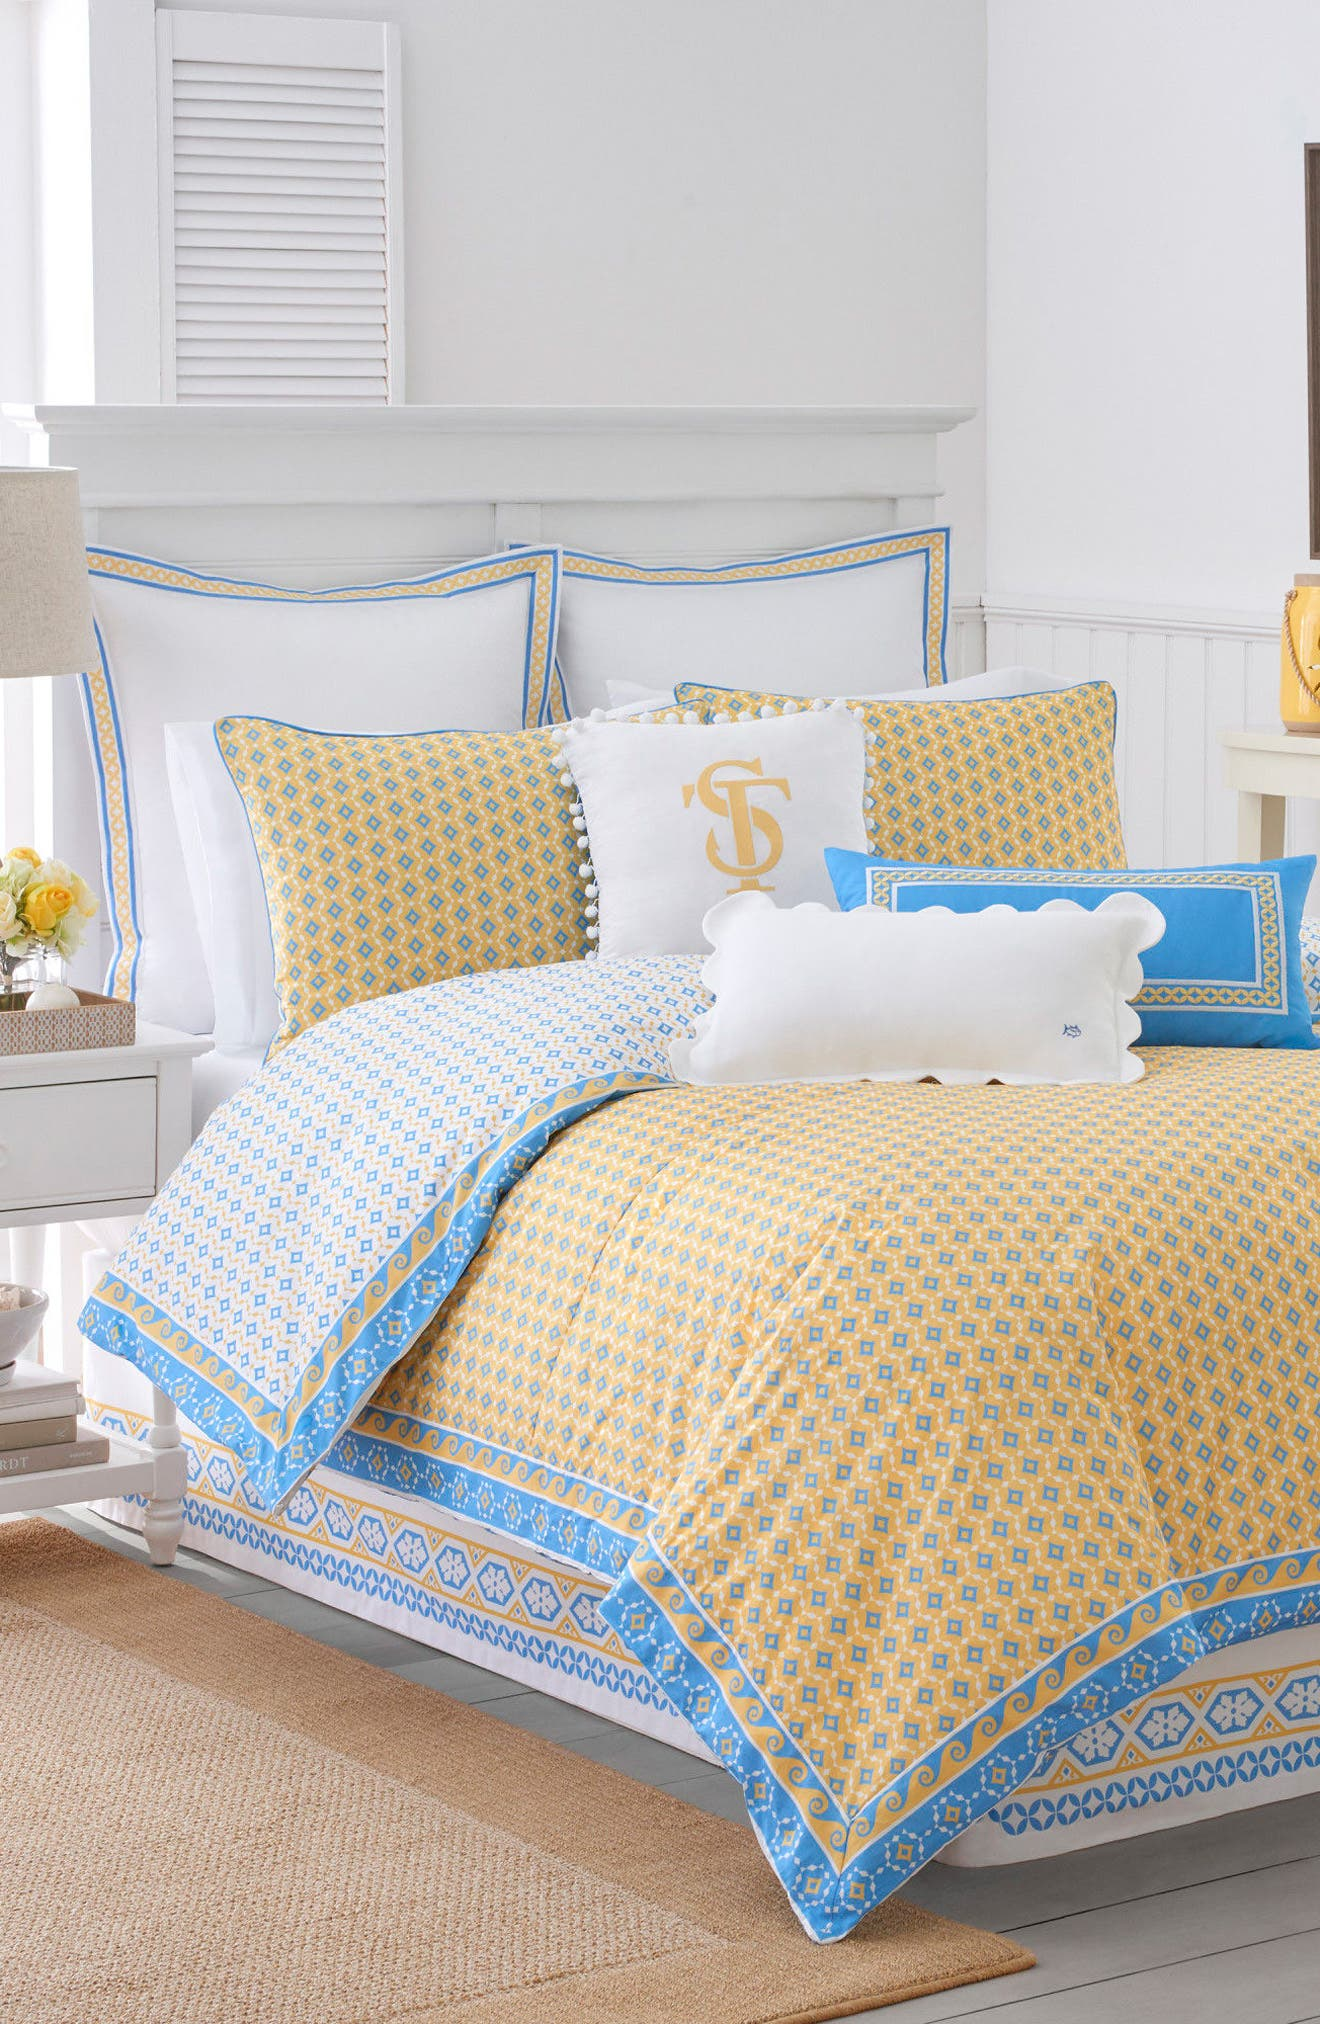 Main Image - Southern Tide Sailgate Comforter, Sham & Bed Skirt Set